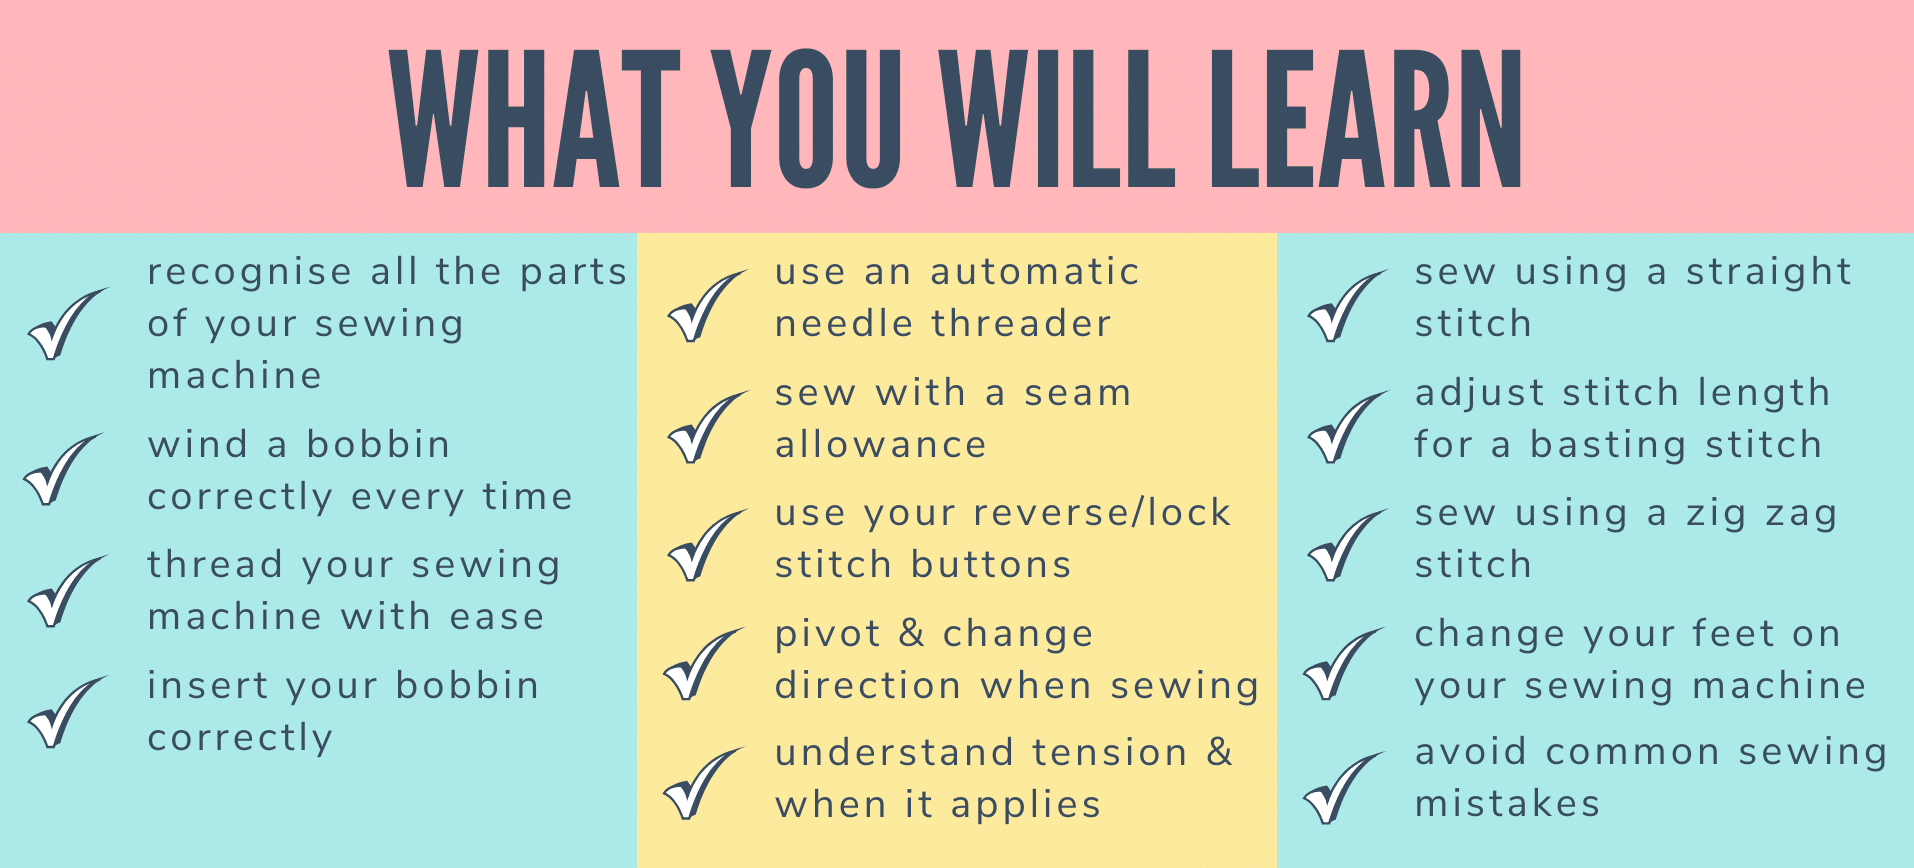 beginner sewing course - what you will learn